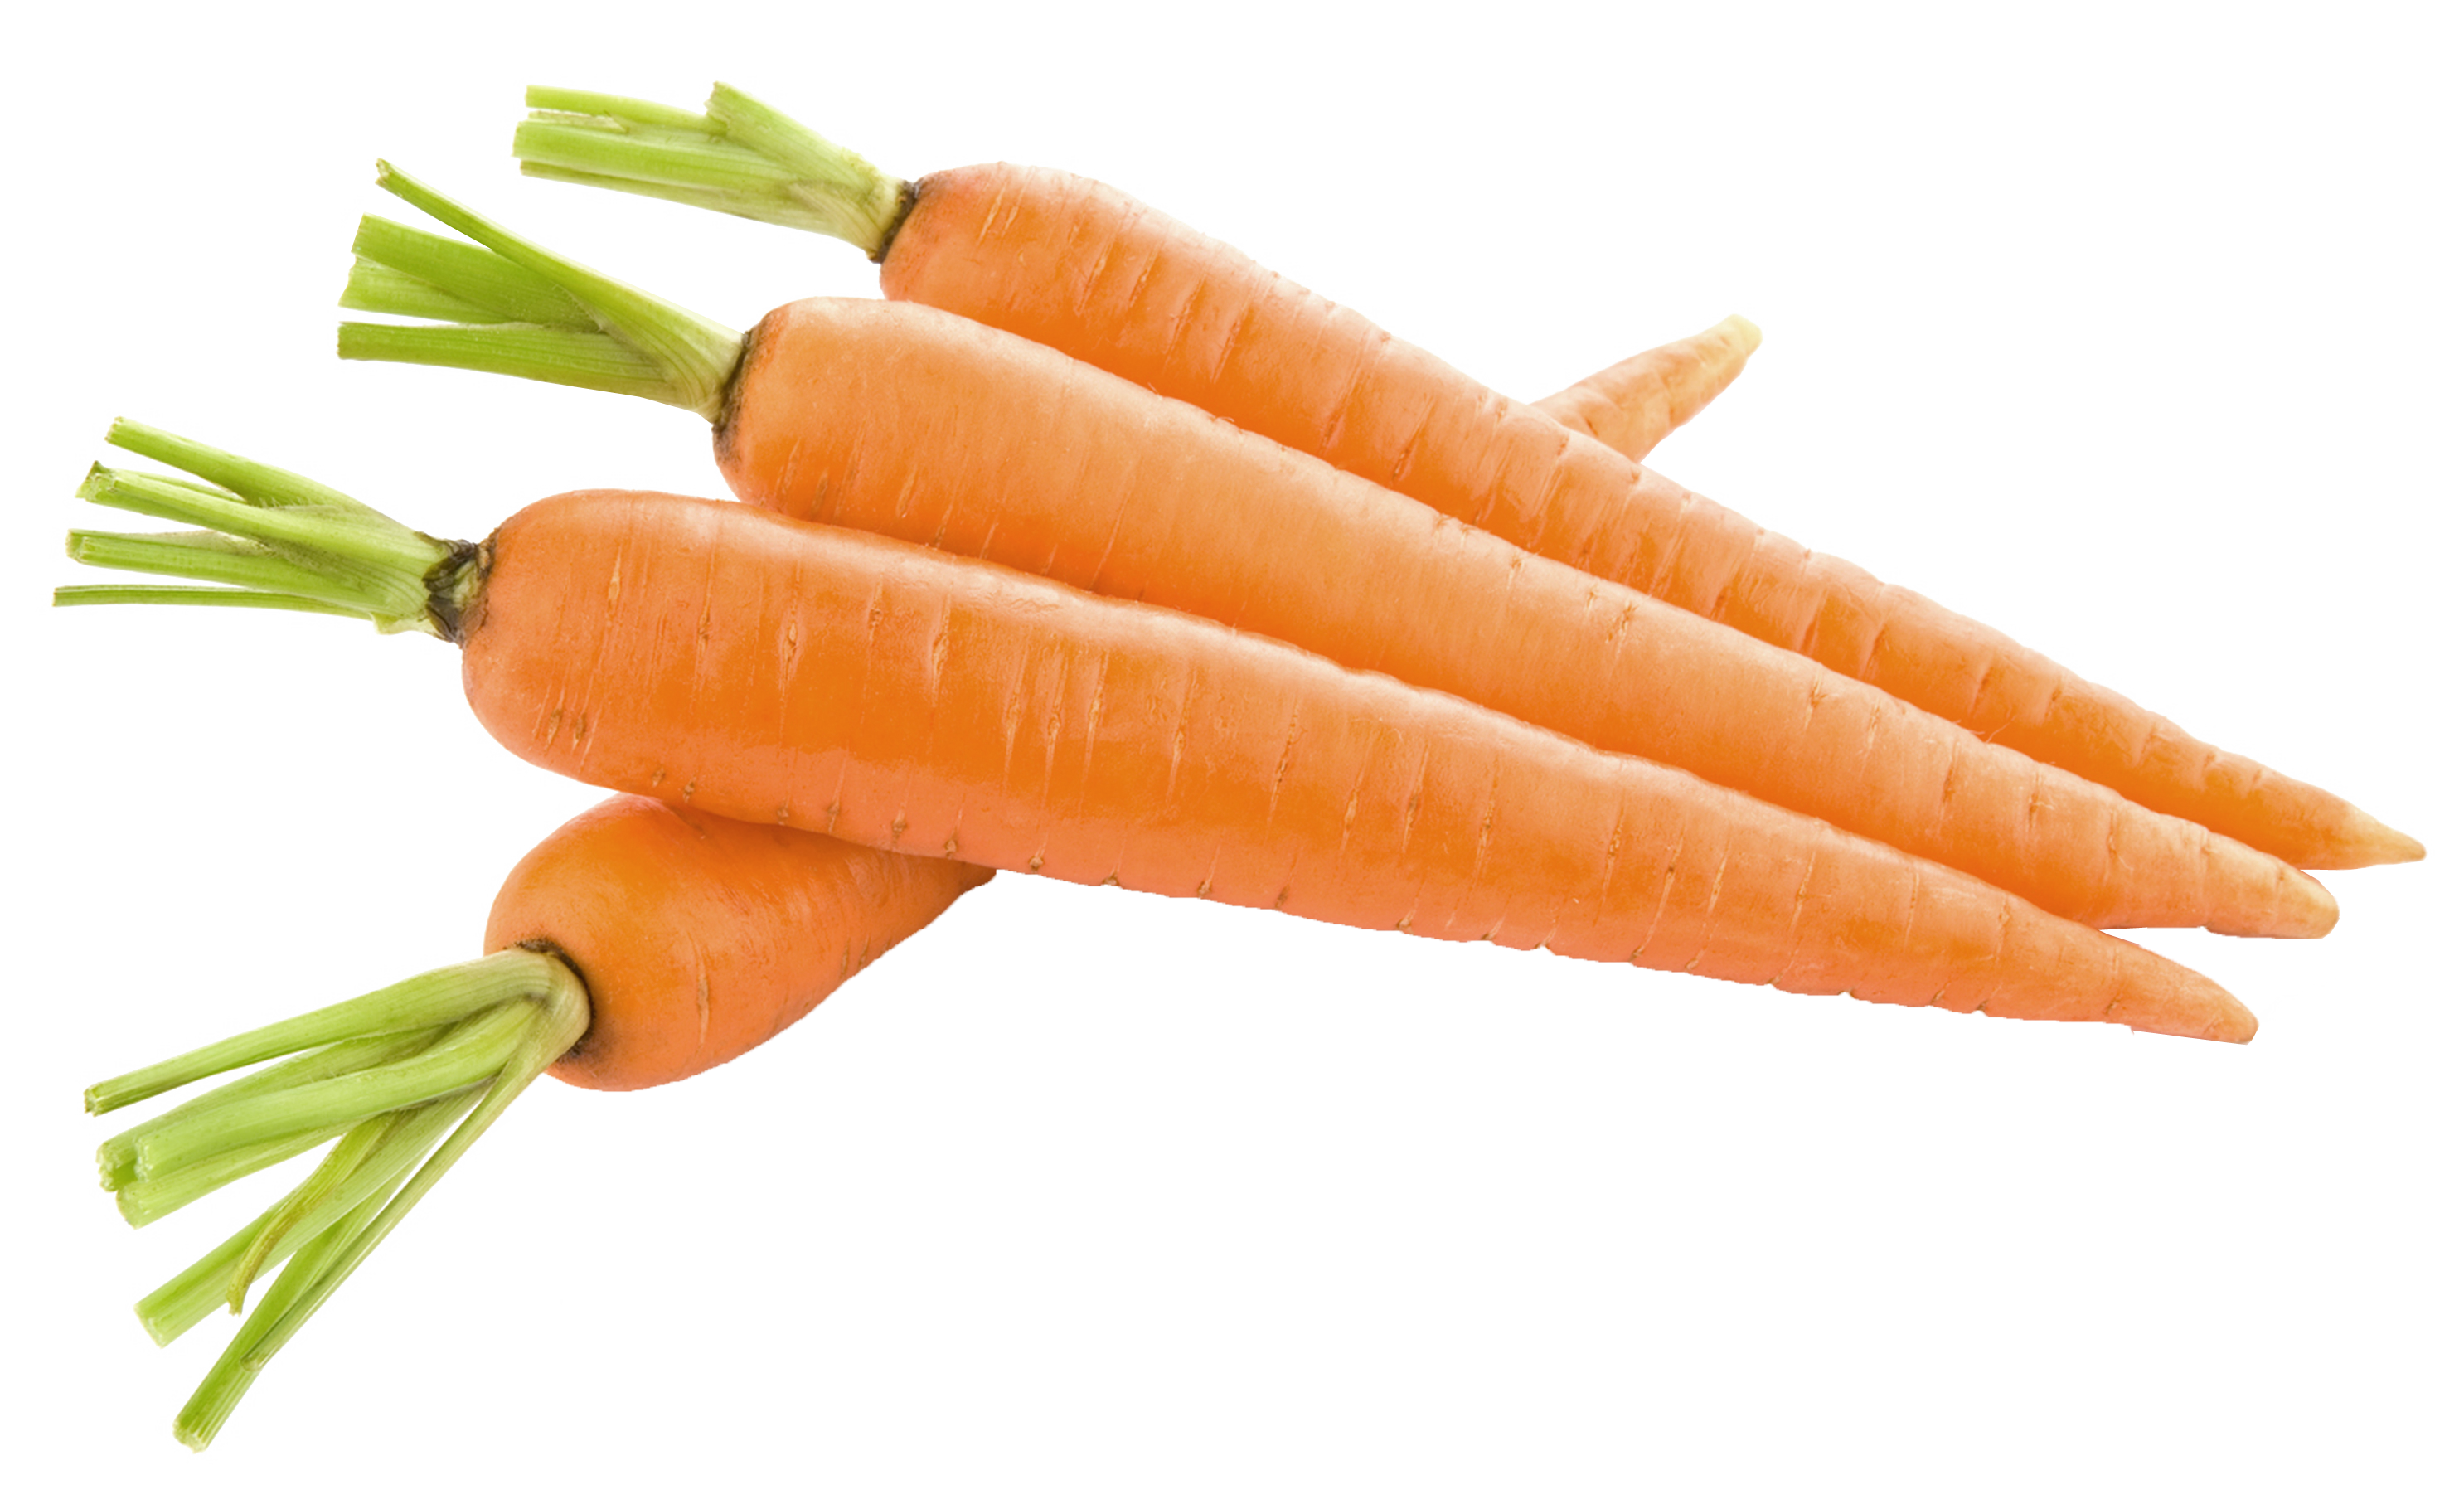 carrot_PNG4985.png